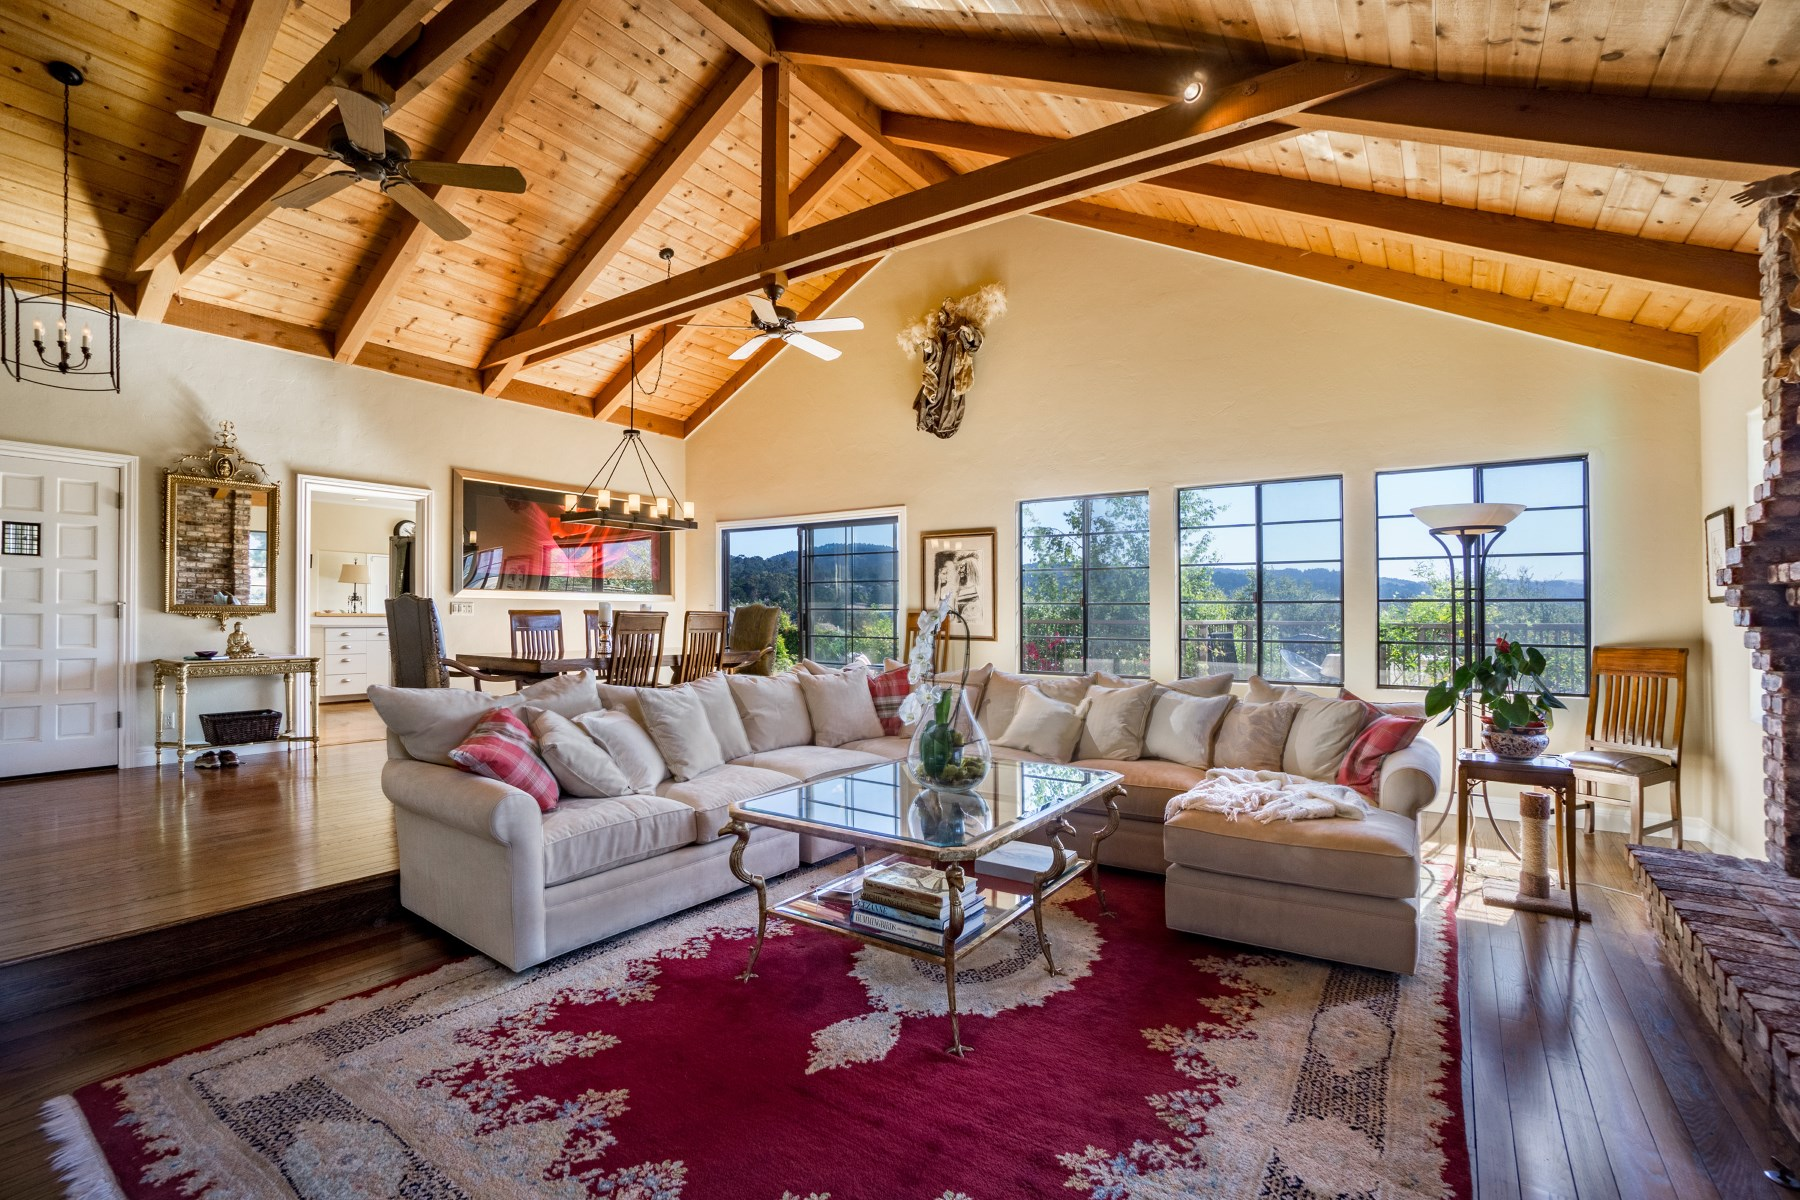 Single Family Home for Sale at Breathtaking views of Carmel Valley 26291 Mesa Place Carmel, California, 93923 United States